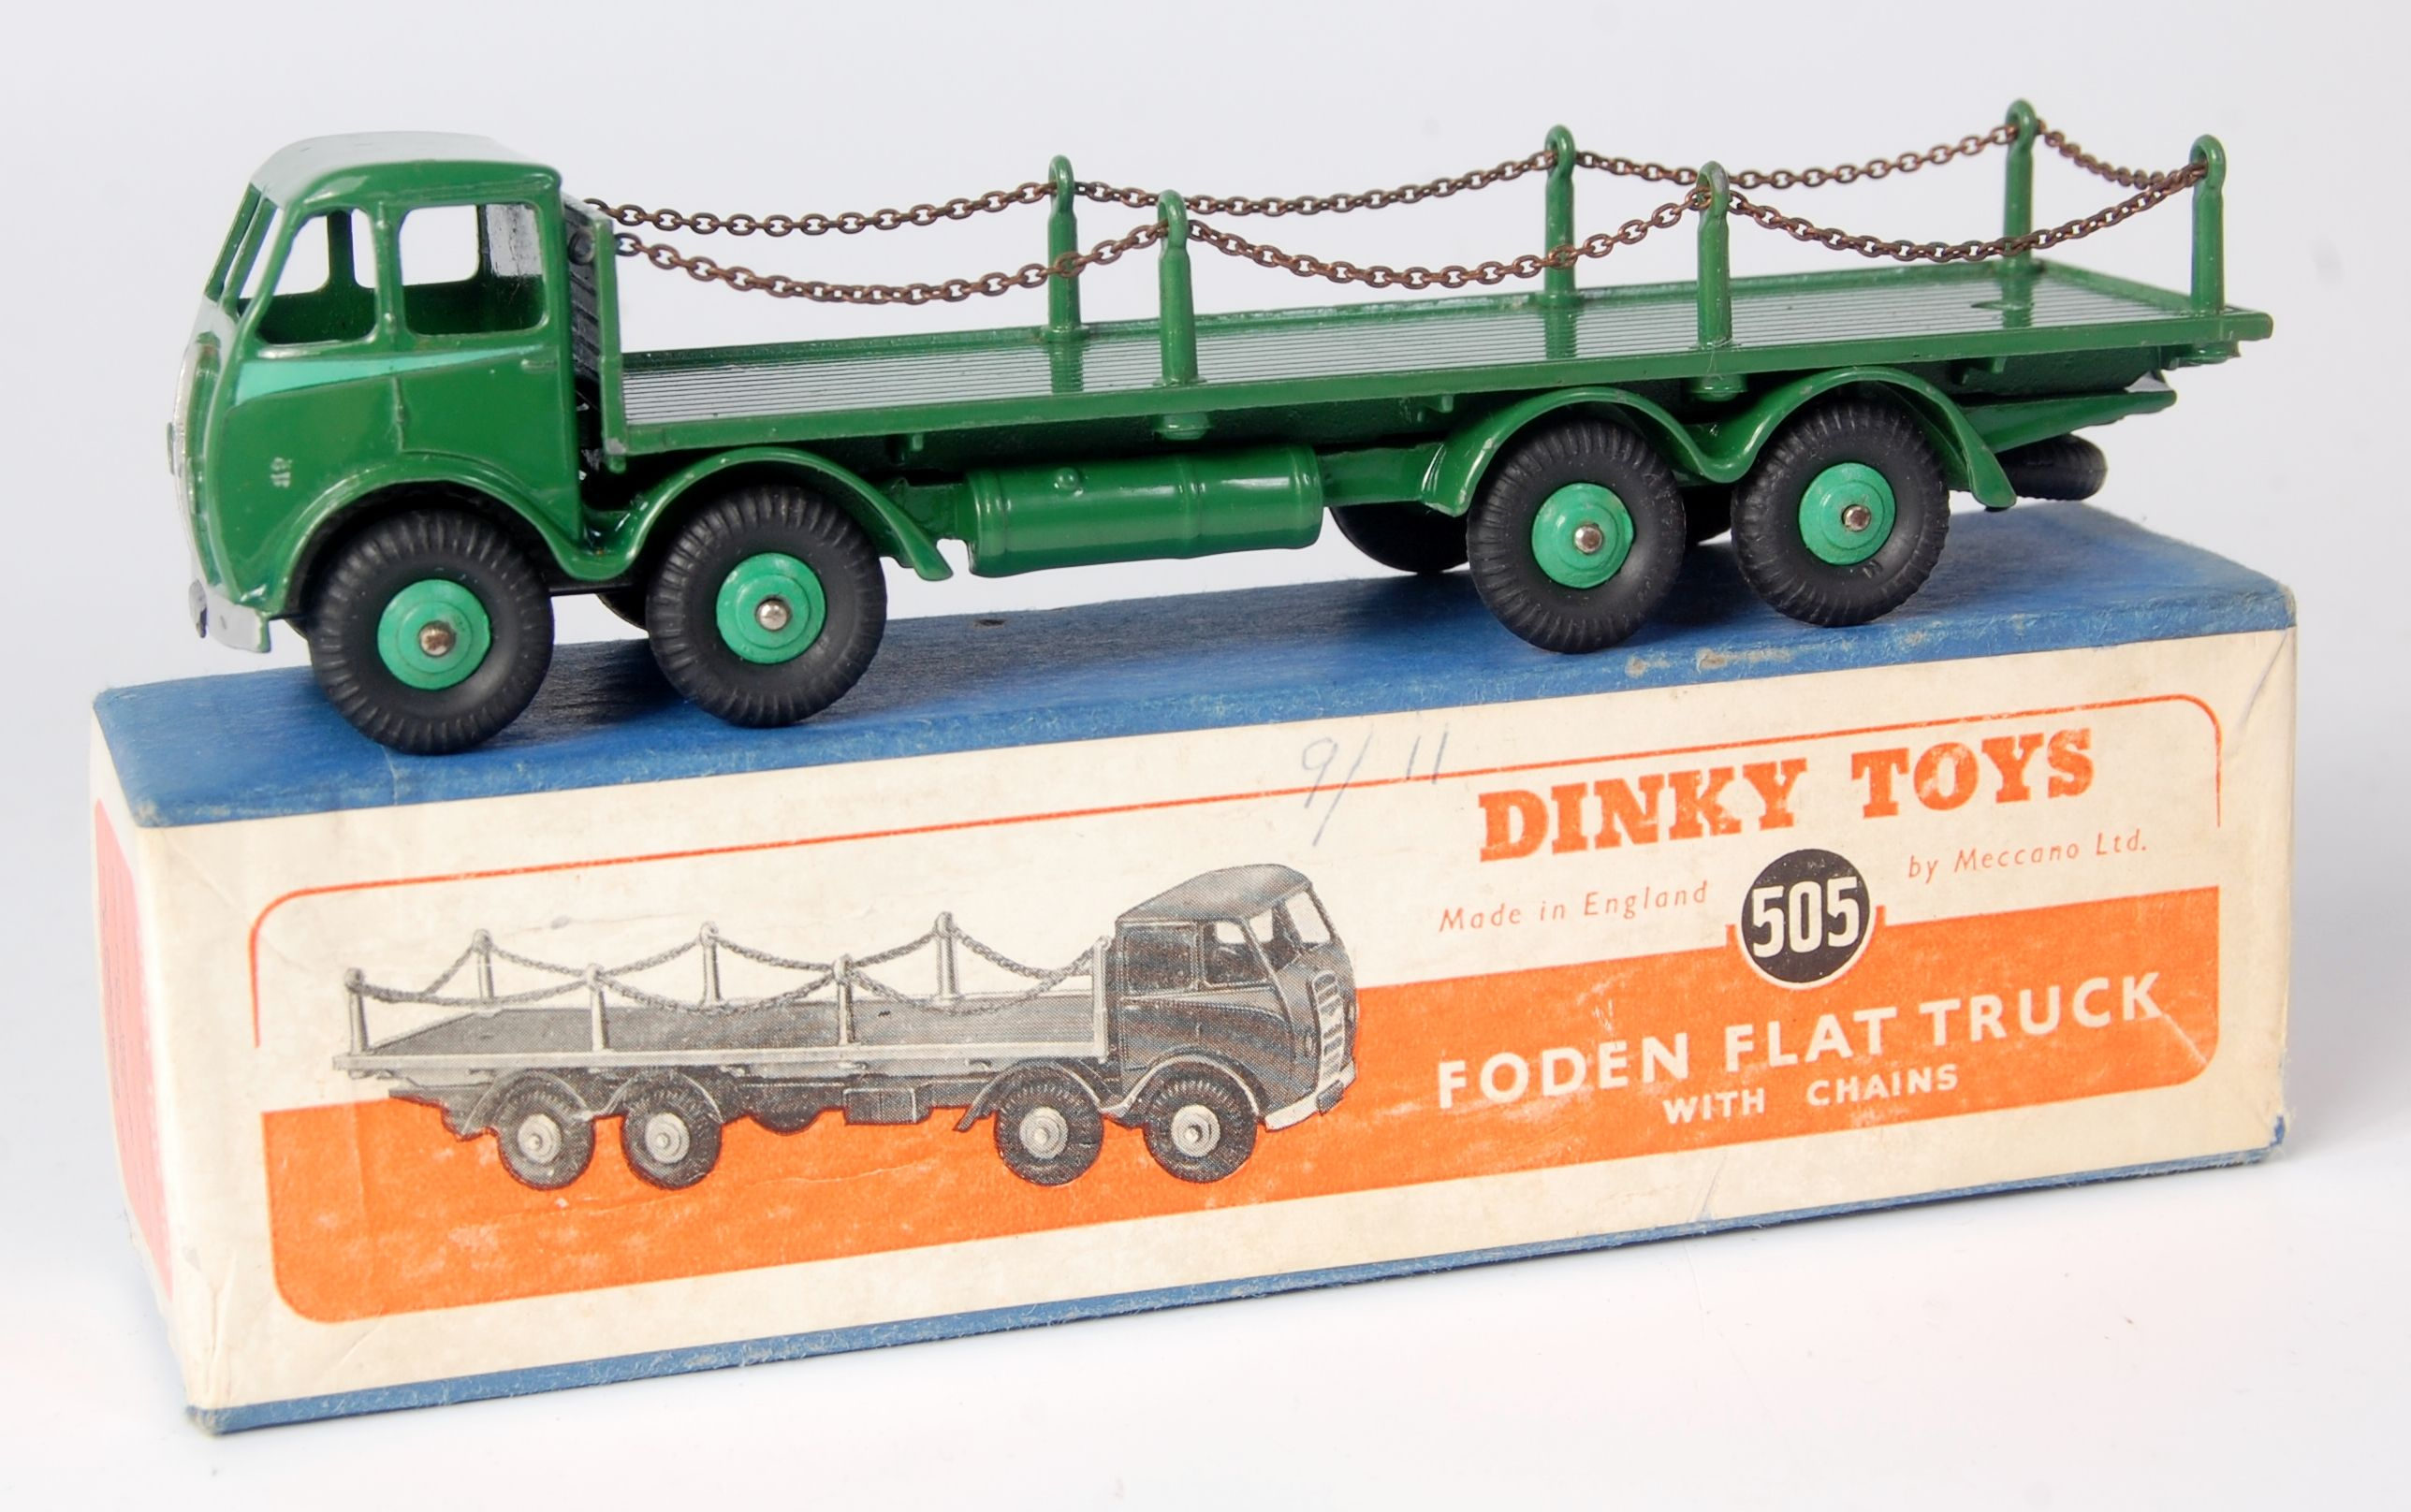 Lot 1946 - Dinky, 505 Foden flat truck with chains, 1st type cab, dark green cab, chassis and flatbed,